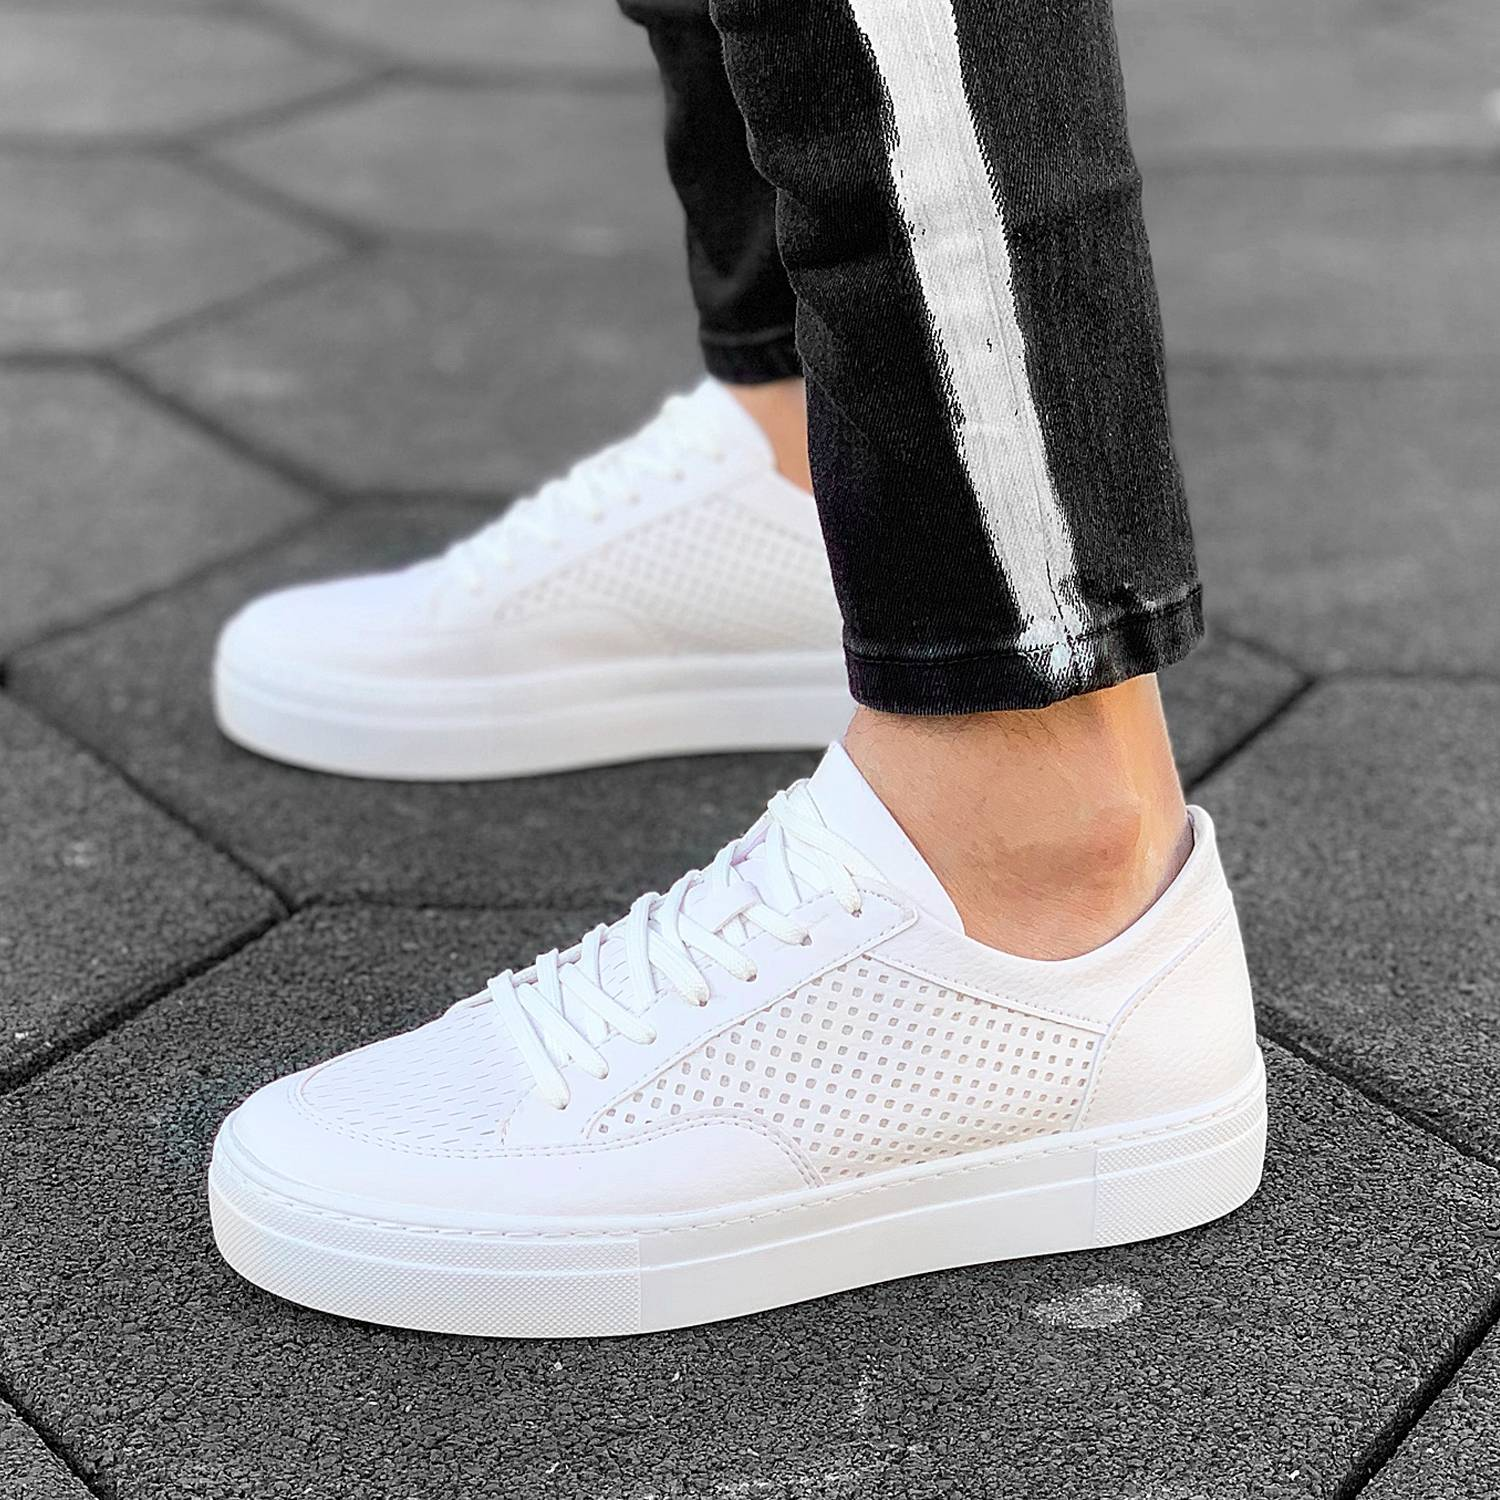 Men's New Stylish Dotted Sneakers White